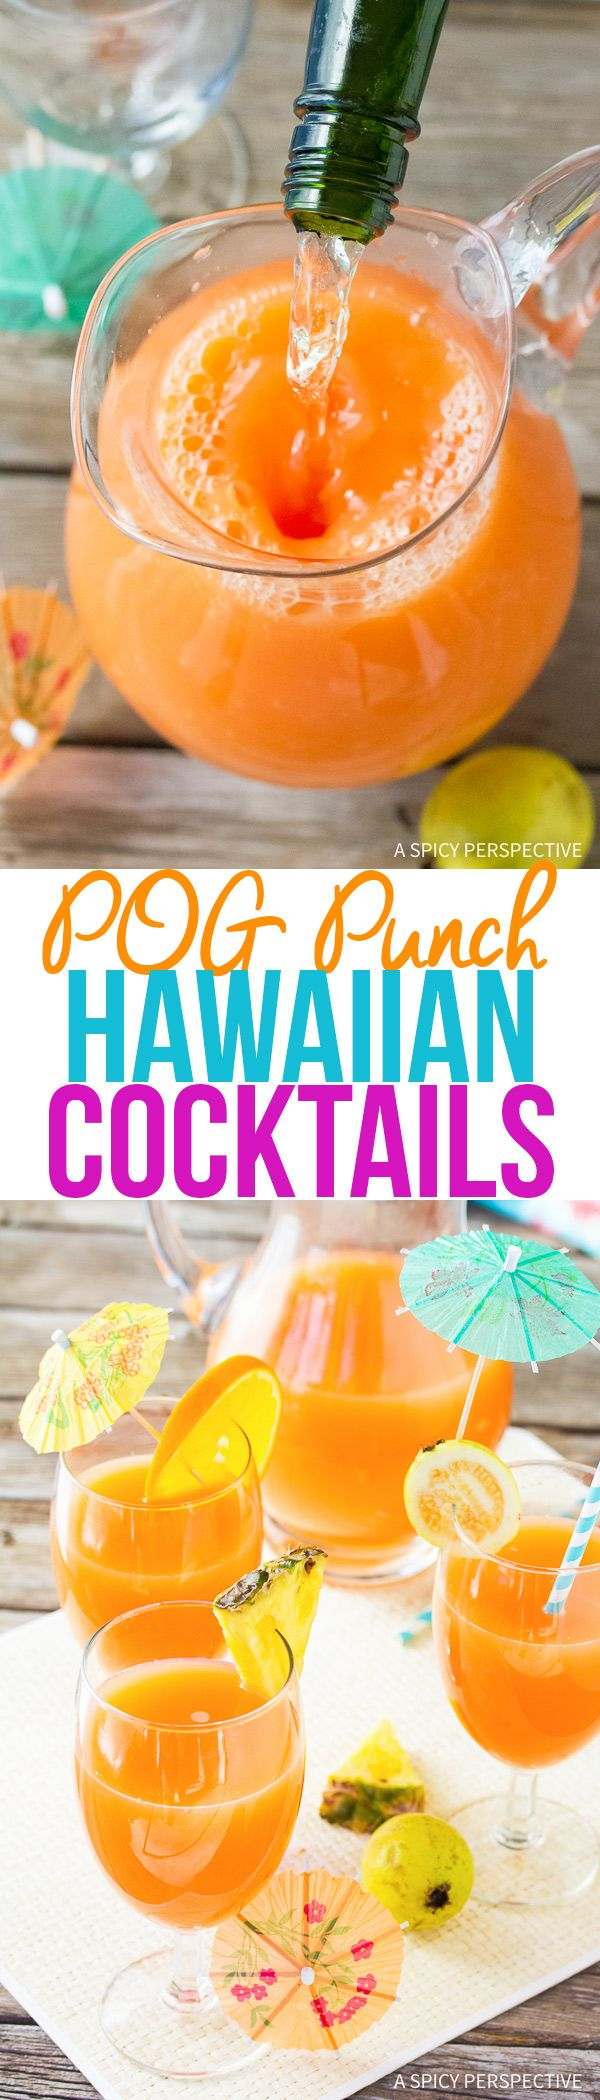 Turn a traditional POG juice into an exciting POG Punch Hawaiian Cocktail! This holiday punch will delight your guests and add a little tropical flair to your dinner party this week. via @spicyperspectiv